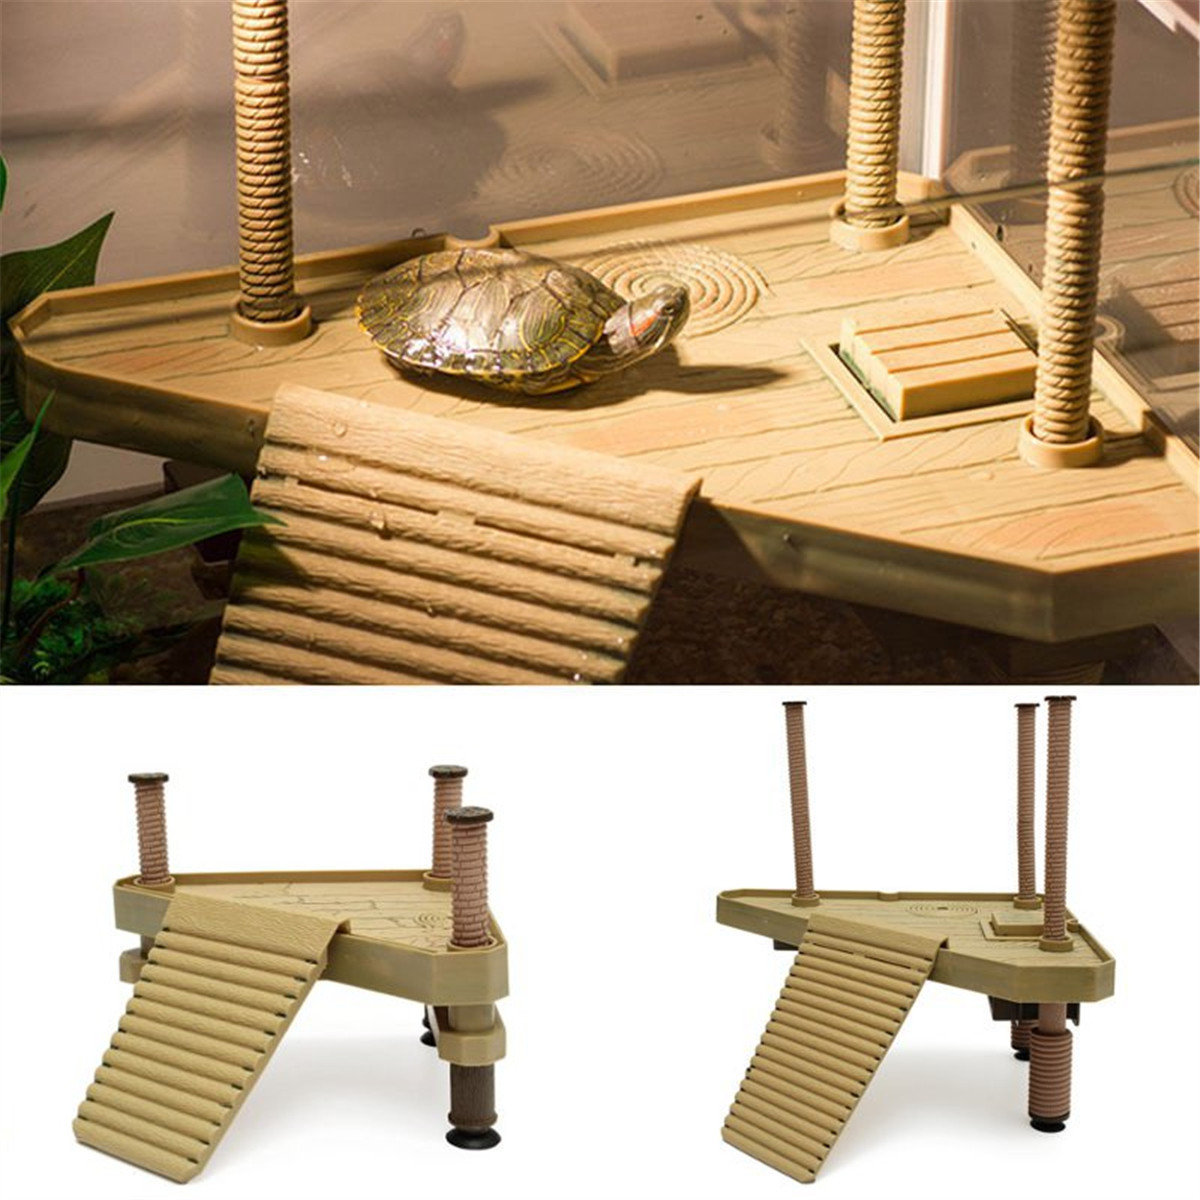 Reptile Turtle Frog Pier Floating Platform Basking Ramp Ladder Aquarium Decor